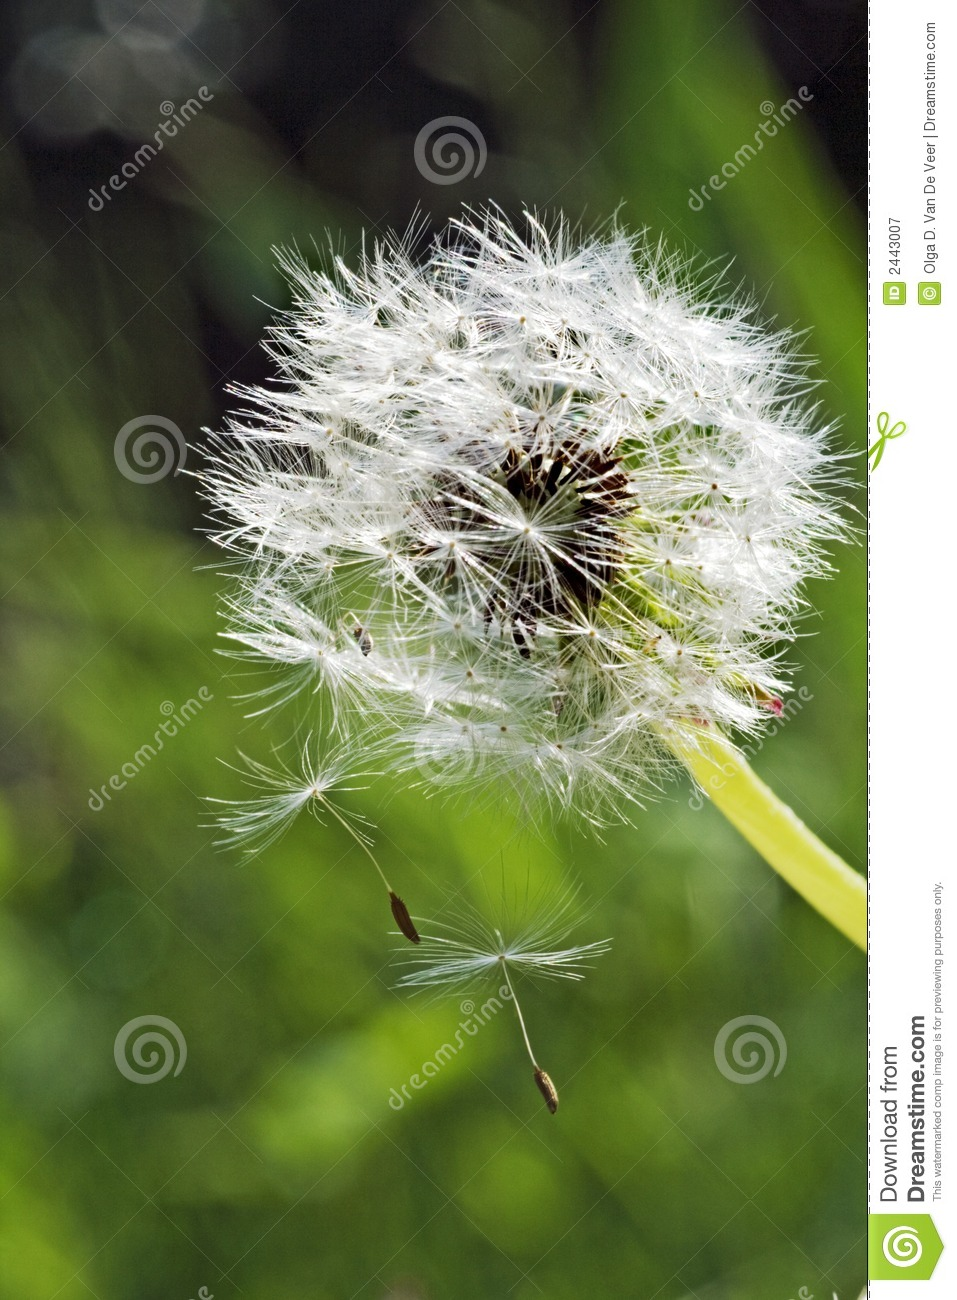 seed dispersal from dandelion royalty free stock